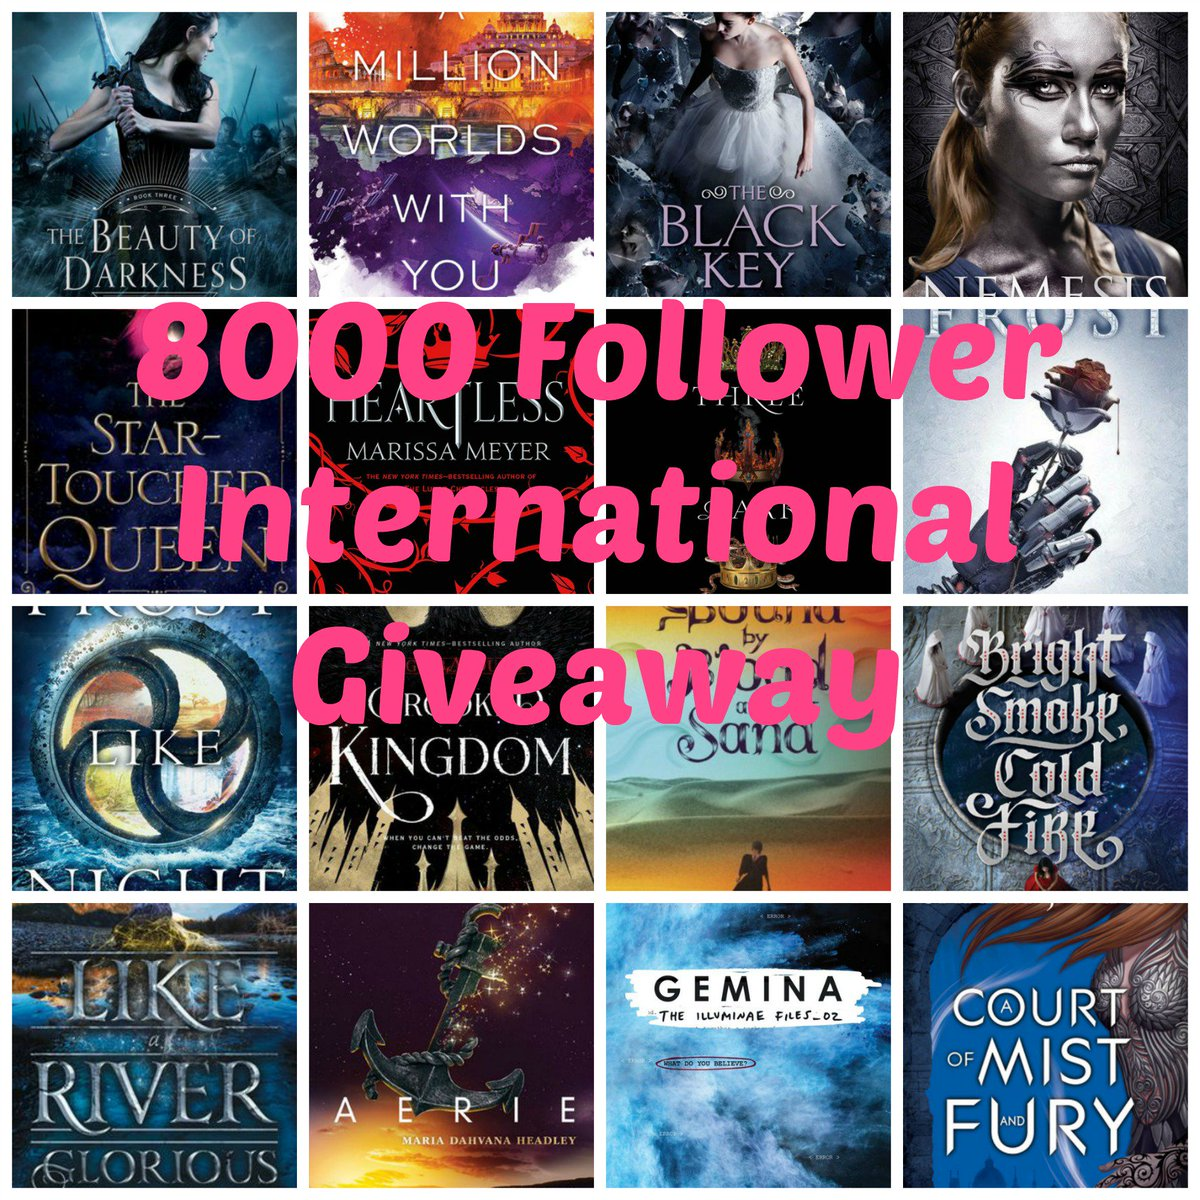 8000 Followers appreciation #giveaway! RT & Follow to win a pre-order of any 2016 release ($20 limit) INT Ends 3/31 https://t.co/YqtnyLf2Dt